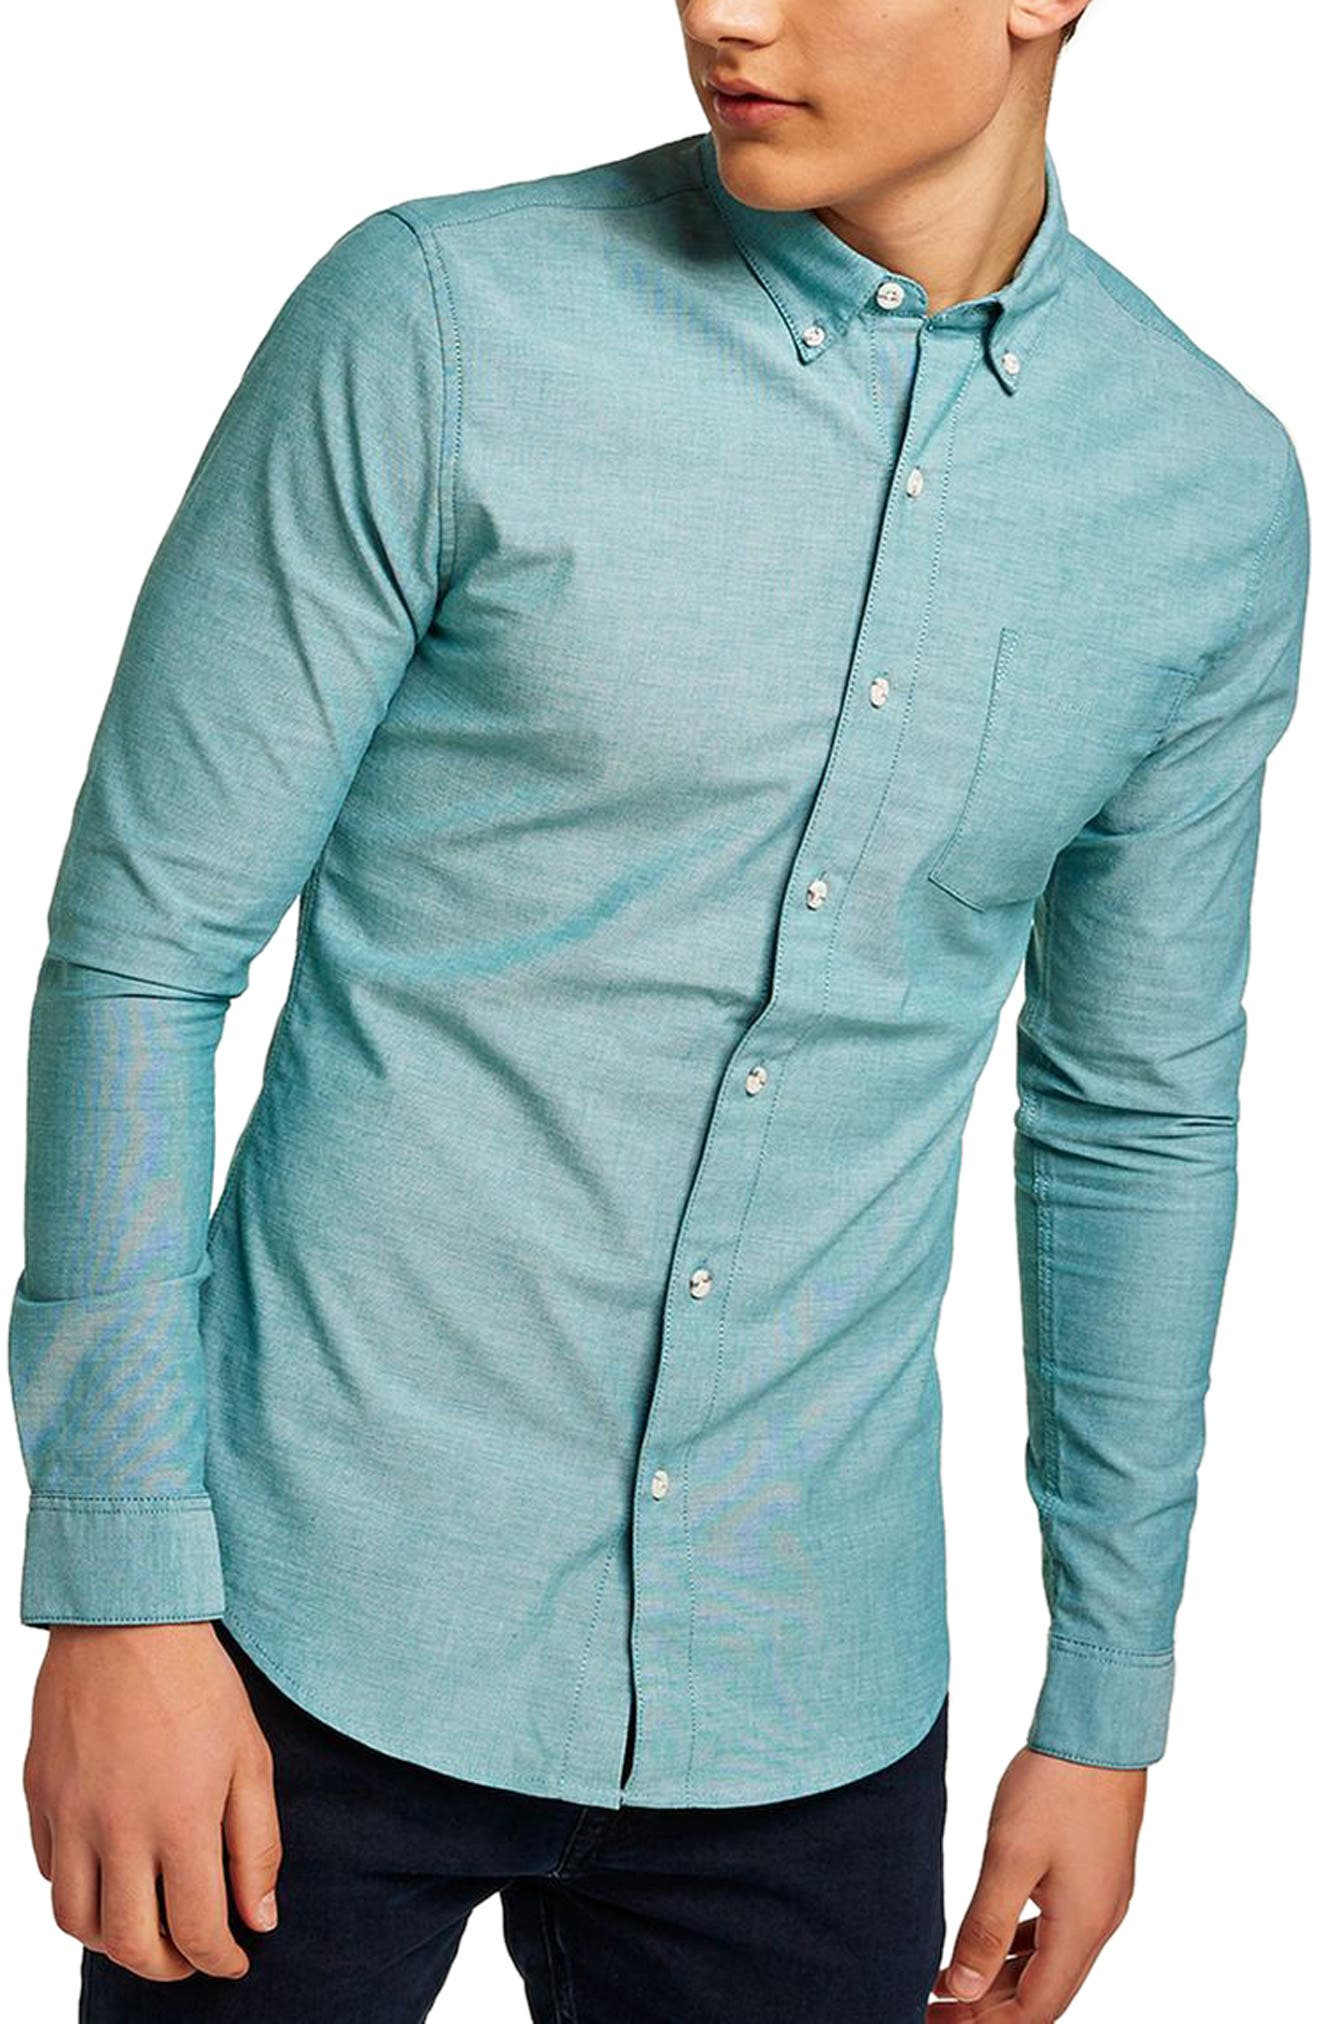 Muscle Fit Oxford Shirt,                         Main,                         color, Blue